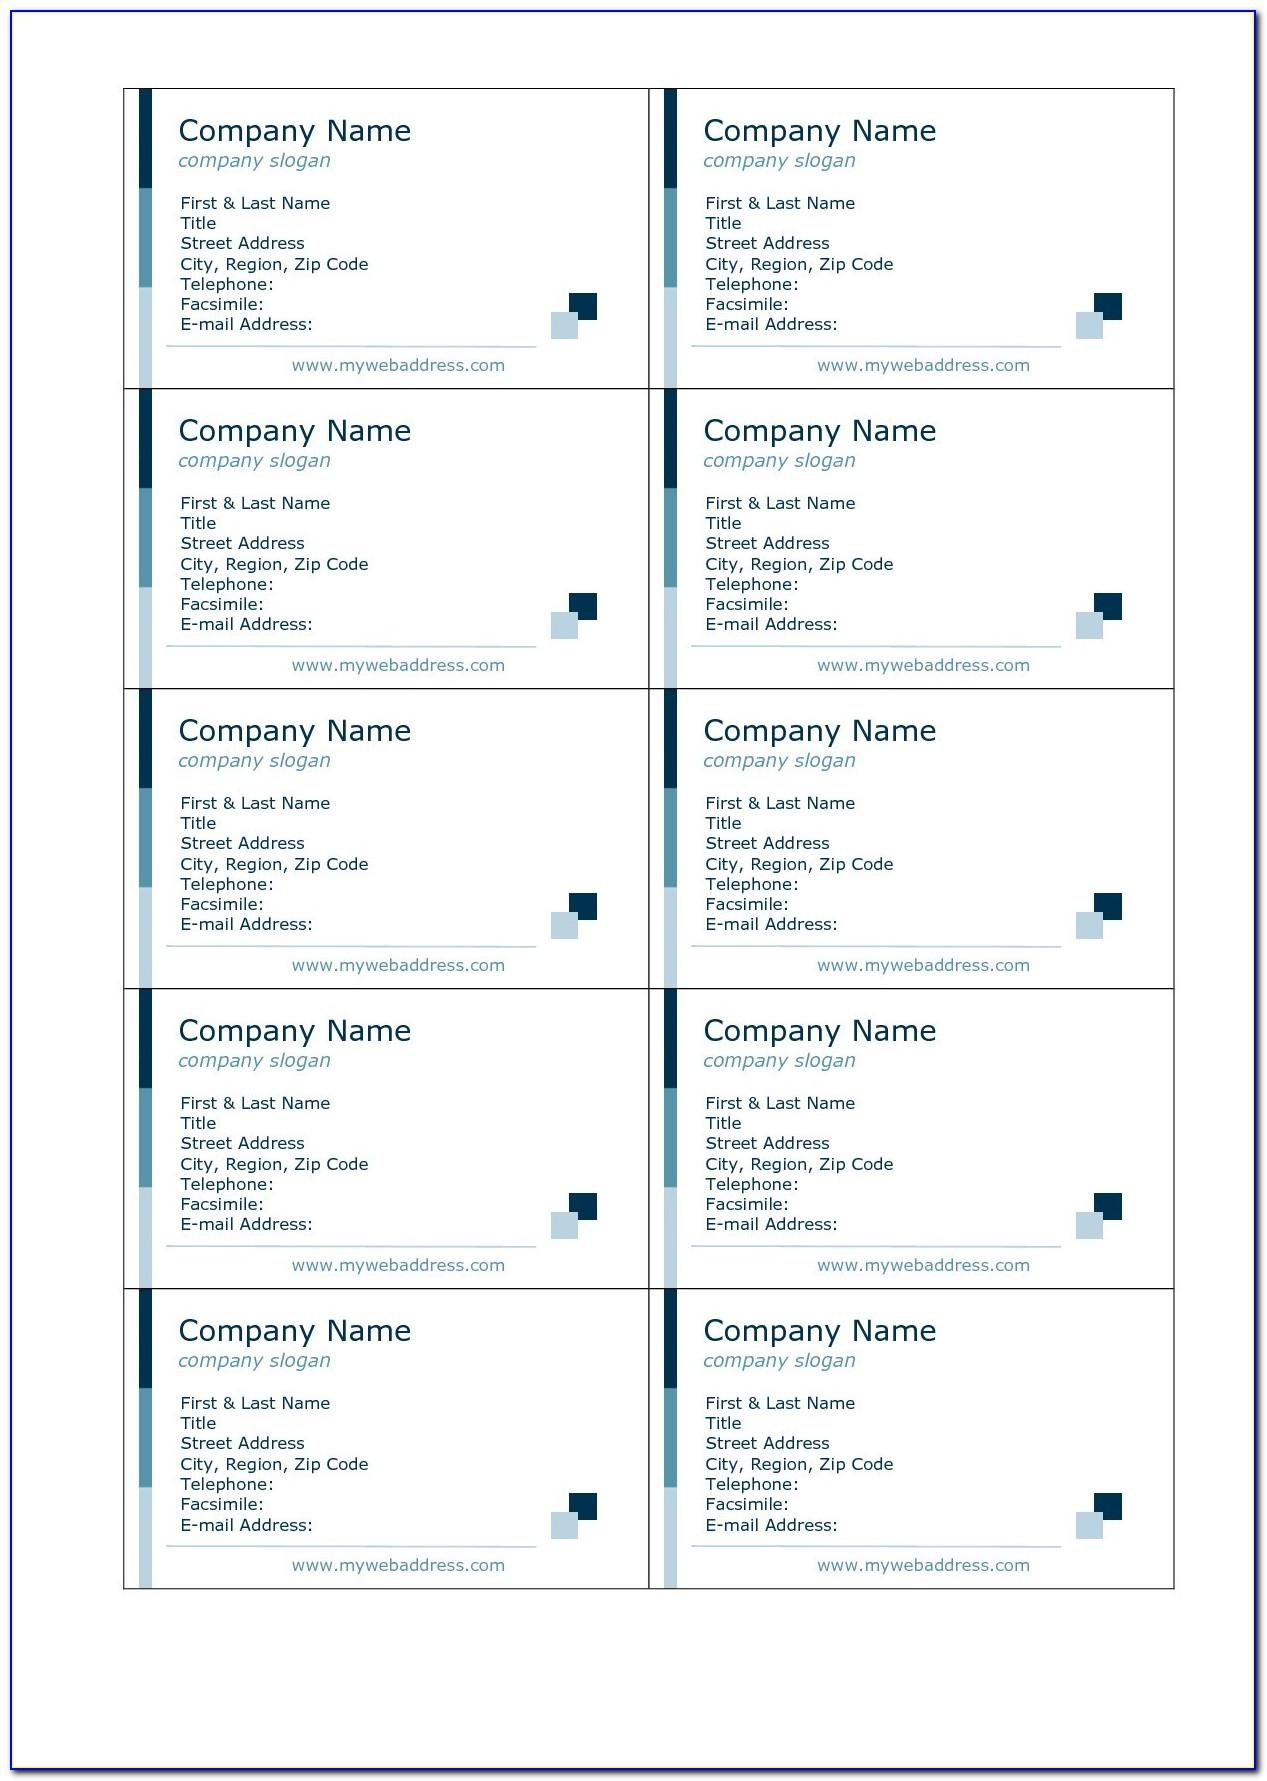 Avery Template 8371 Business Cards For Mac